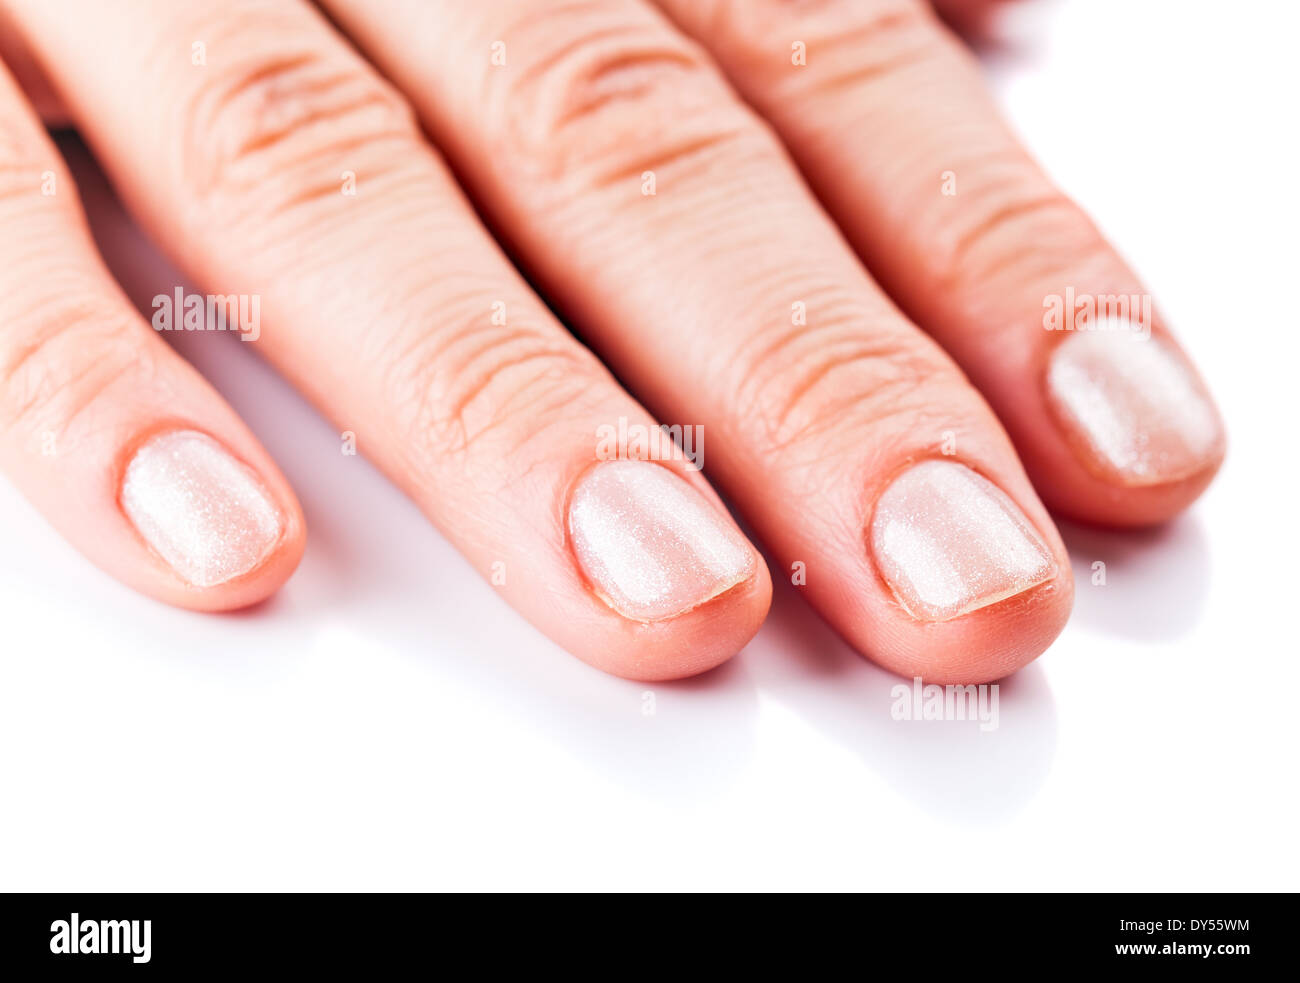 Female hand with manicure on short nails Stock Photo: 68341216 - Alamy